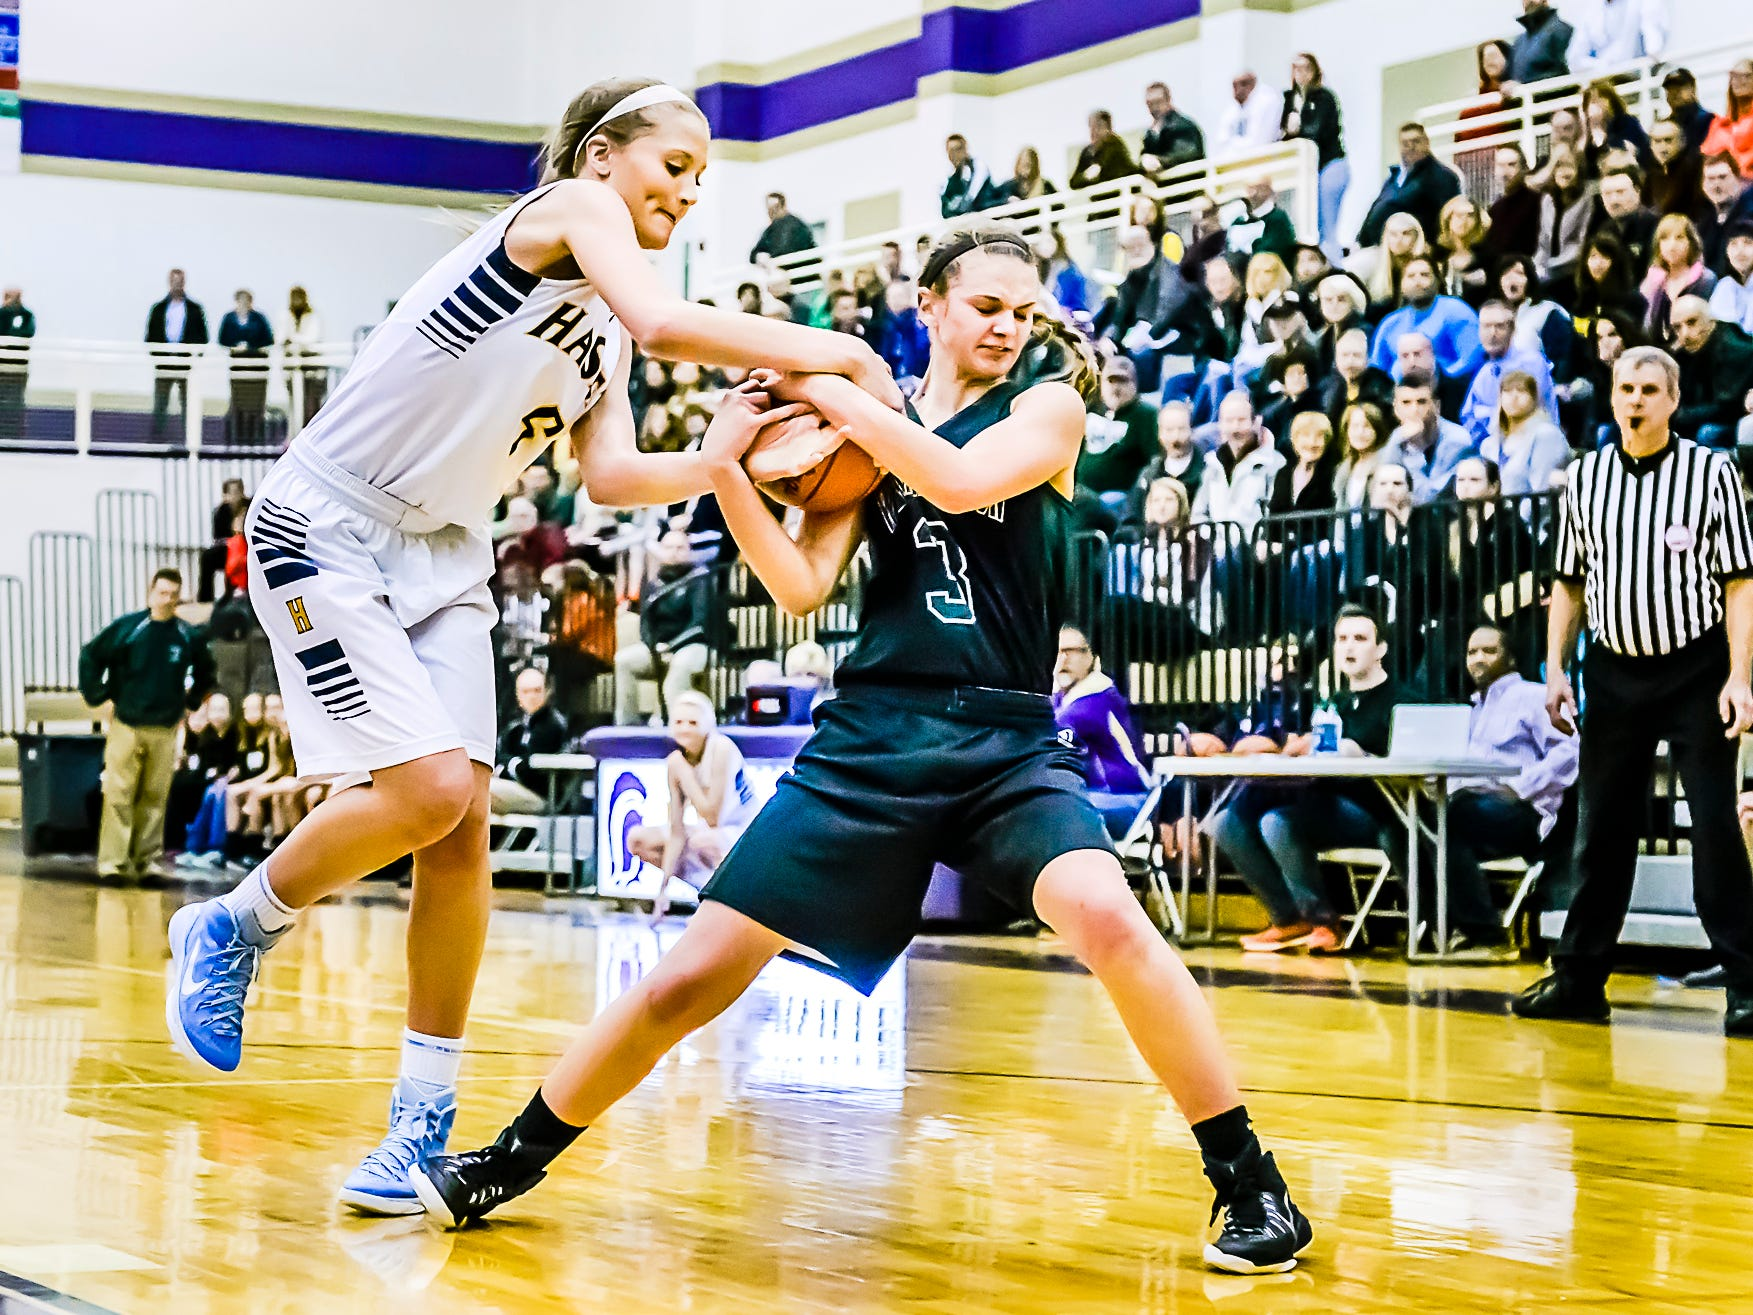 Haslett's Karson Tripp, left, and Williamston's Renee Sturm are among the area girls basketball players to watch.